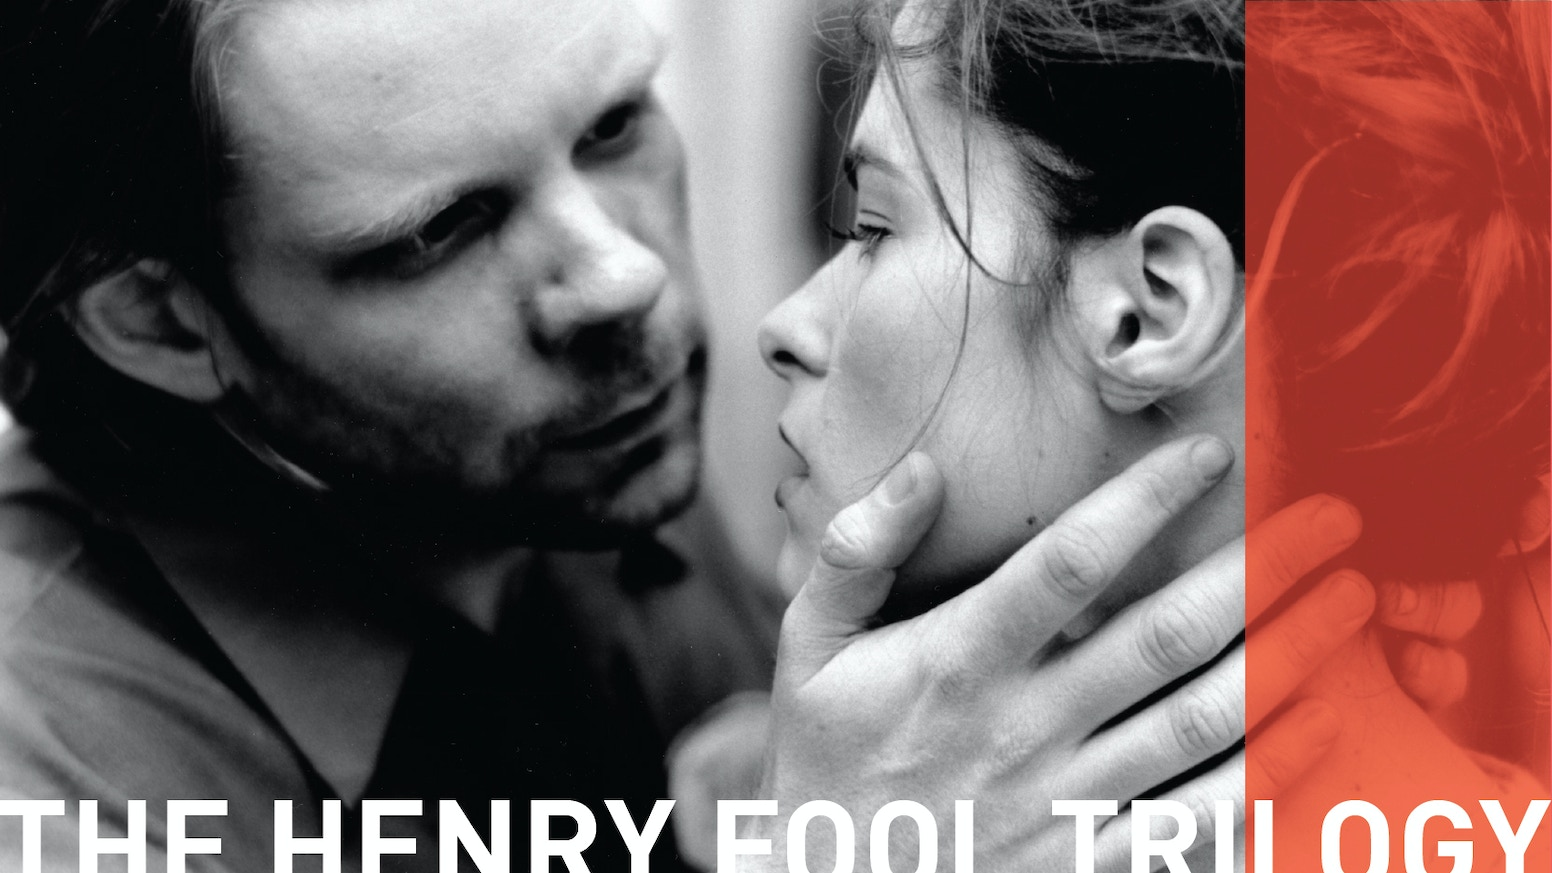 HENRY FOOL, FAY GRIM, and NED RIFLE together for the first time, subtitled in French, German, Spanish, Japanese and (even) English.